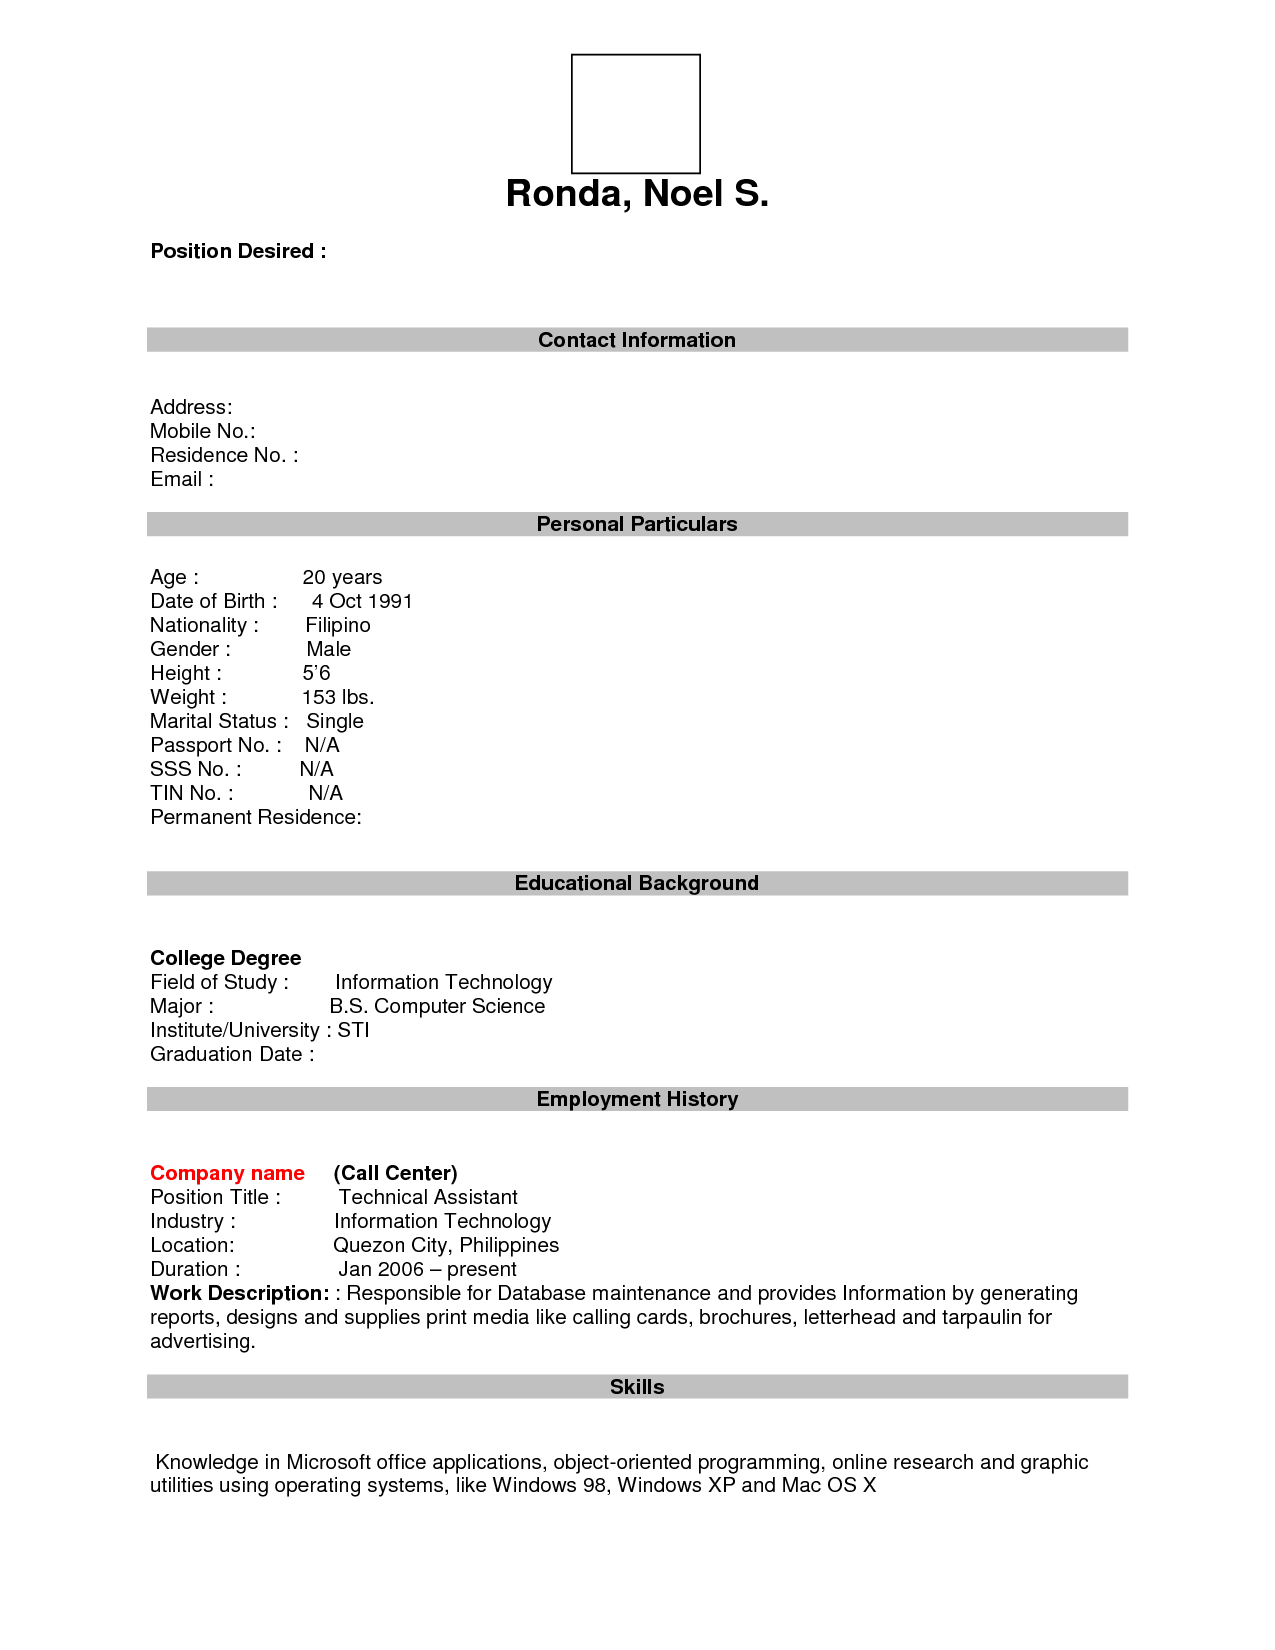 Blank Resume Forms To Fill Out Resumecareer Info  Fill In The Blank Resume Pdf